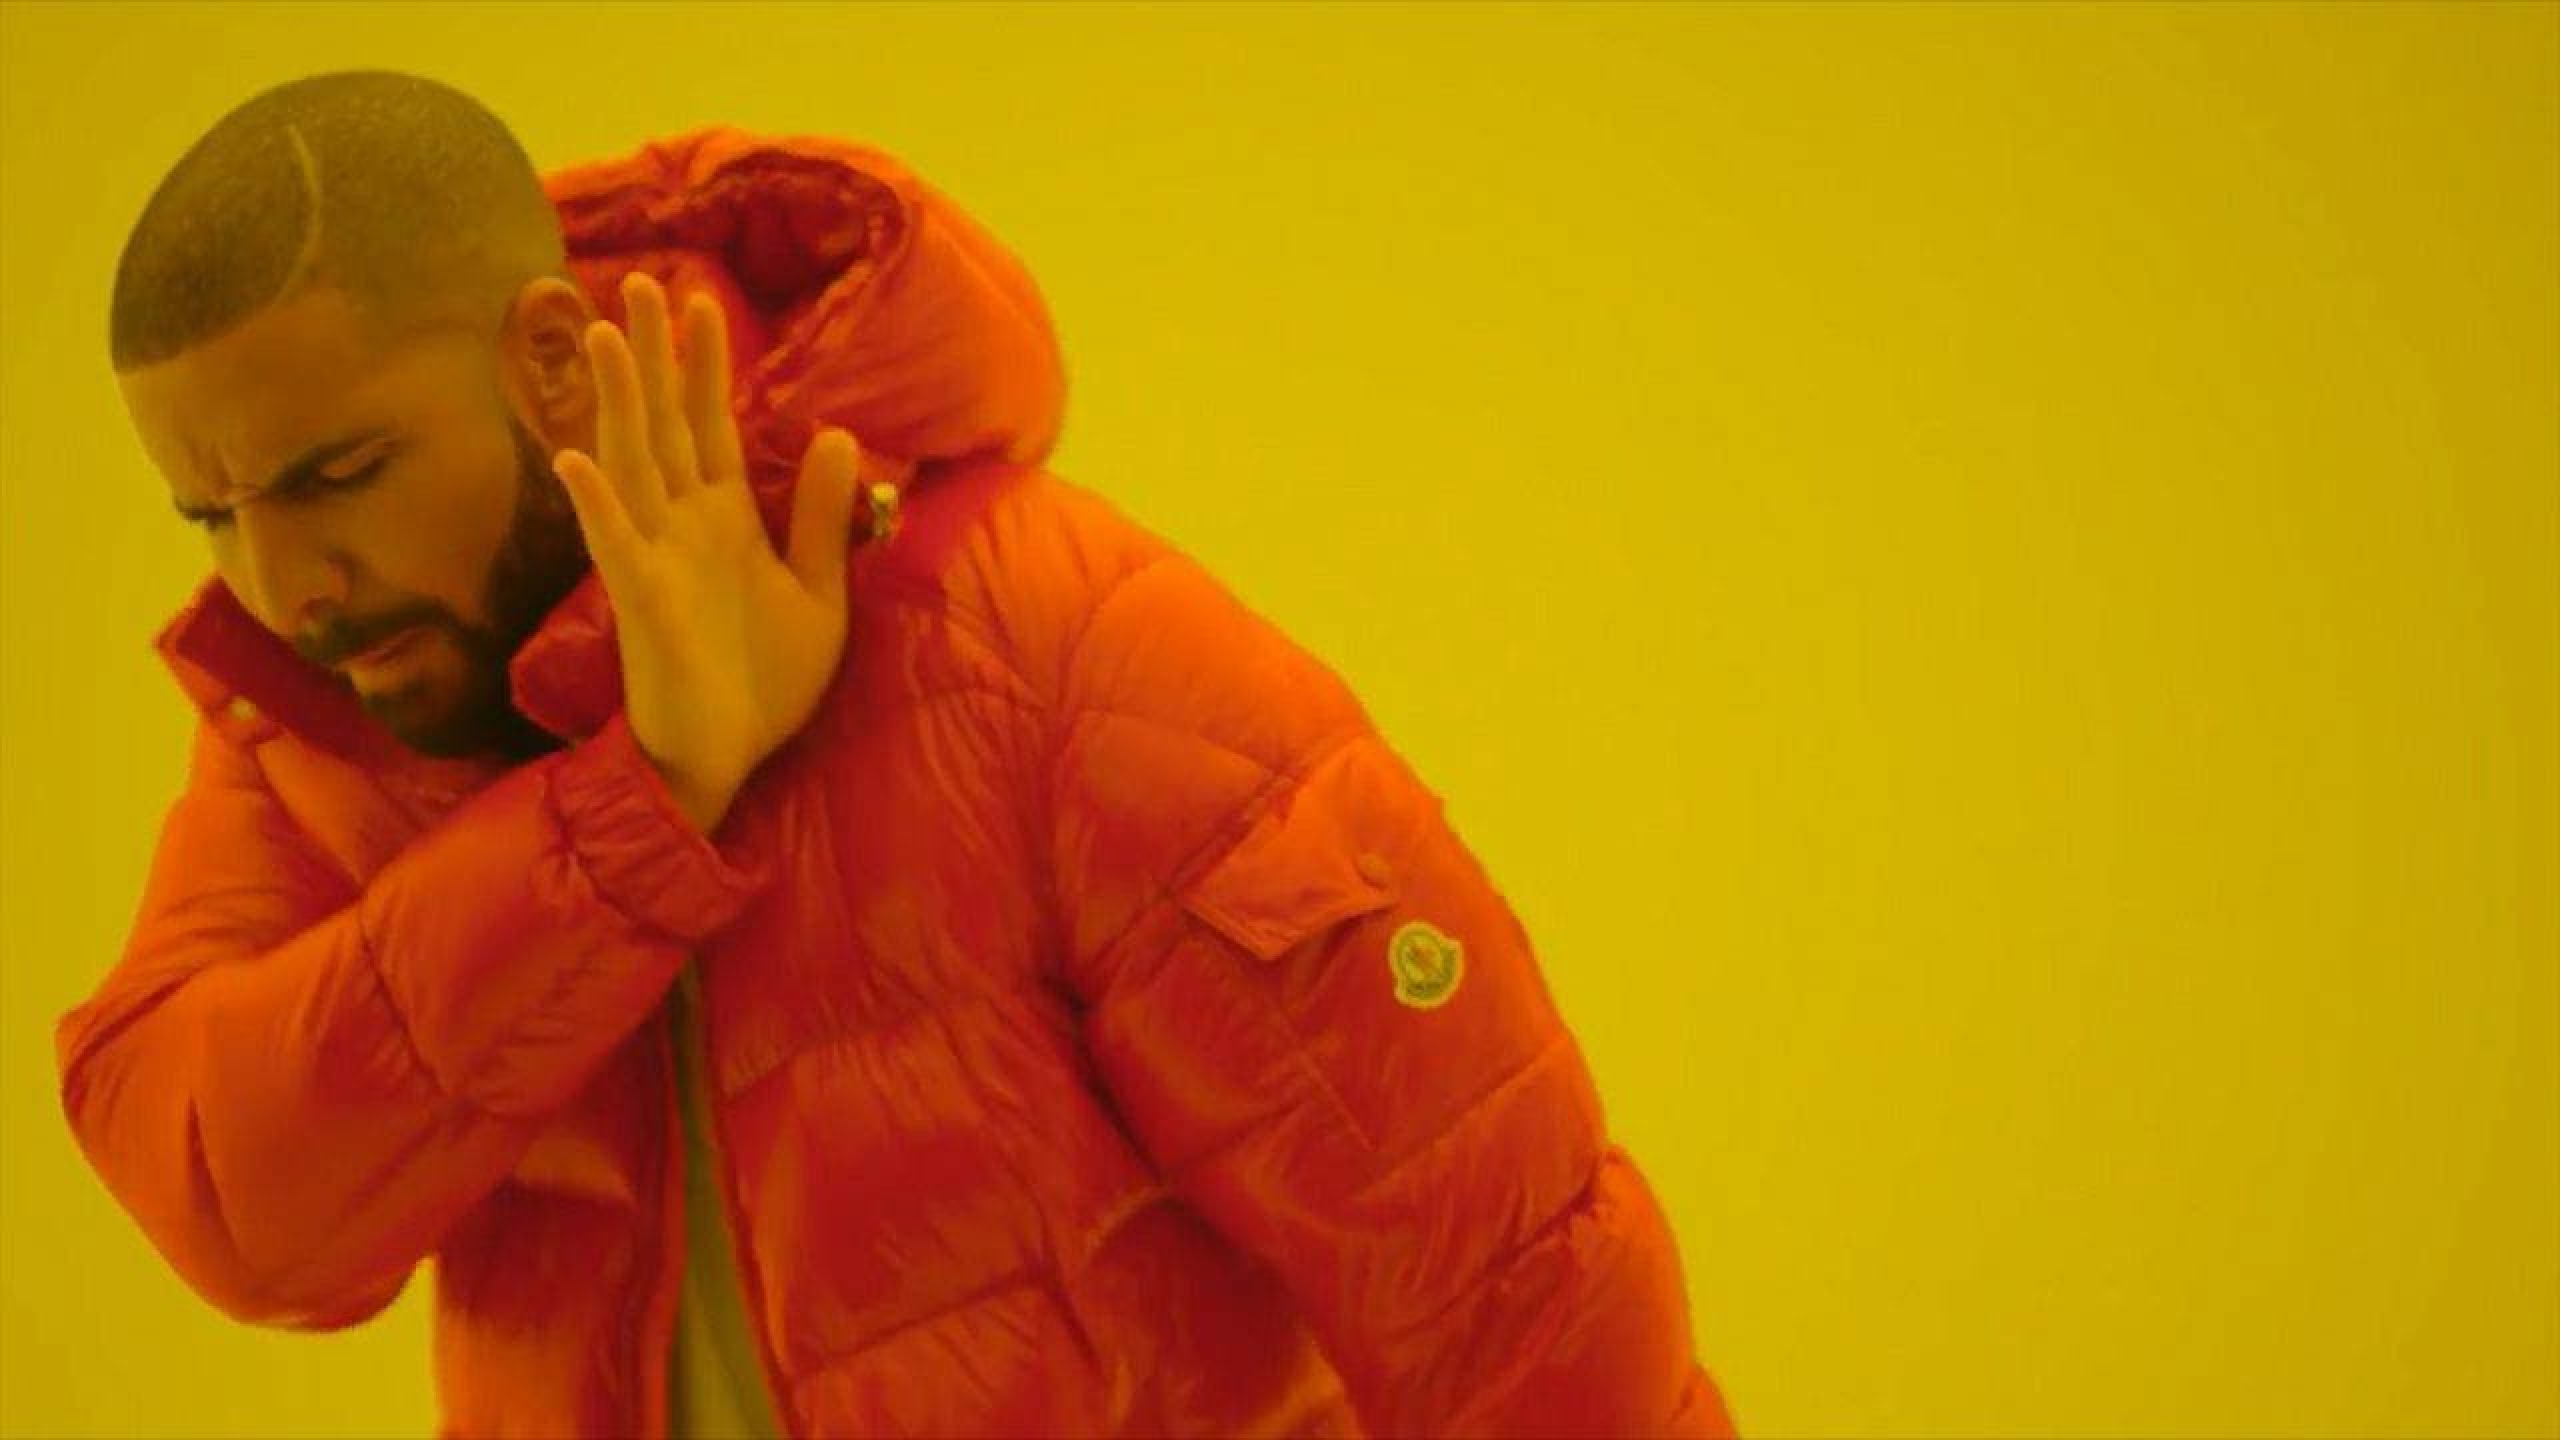 meme de Drake en el video Hotline Bling